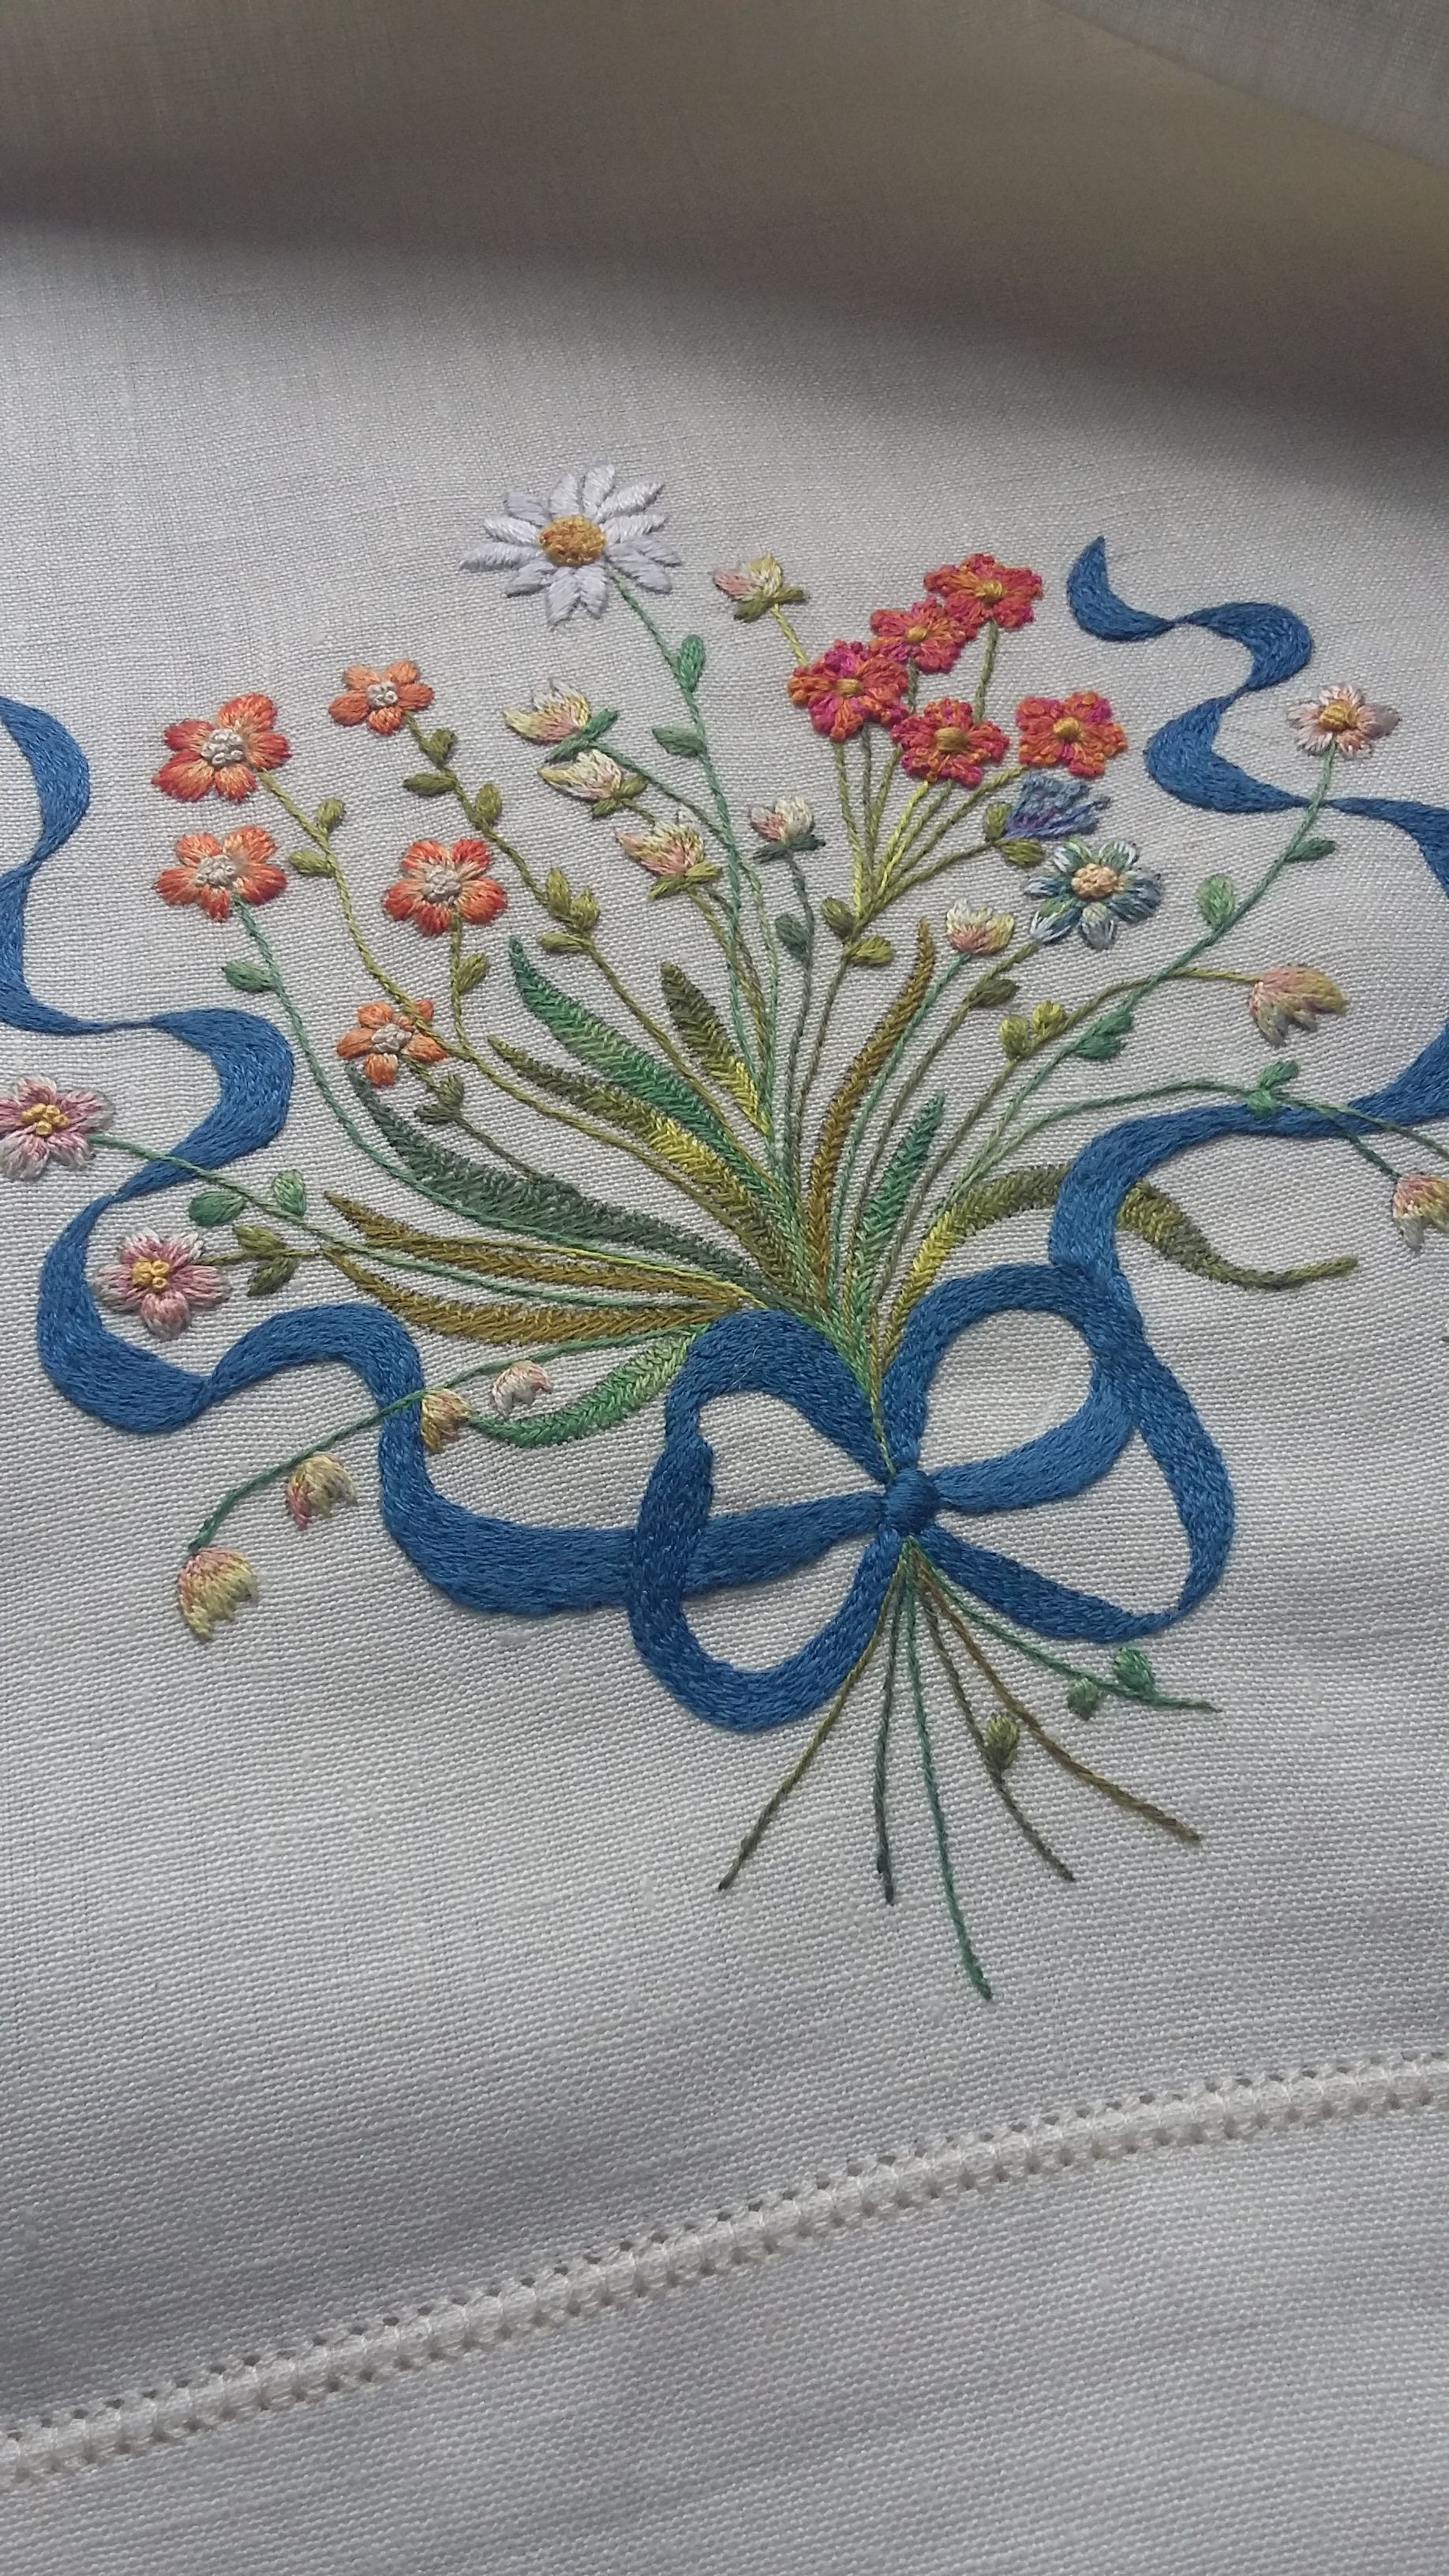 Ribbon embroidery bedspread designs - Embroidery Designs